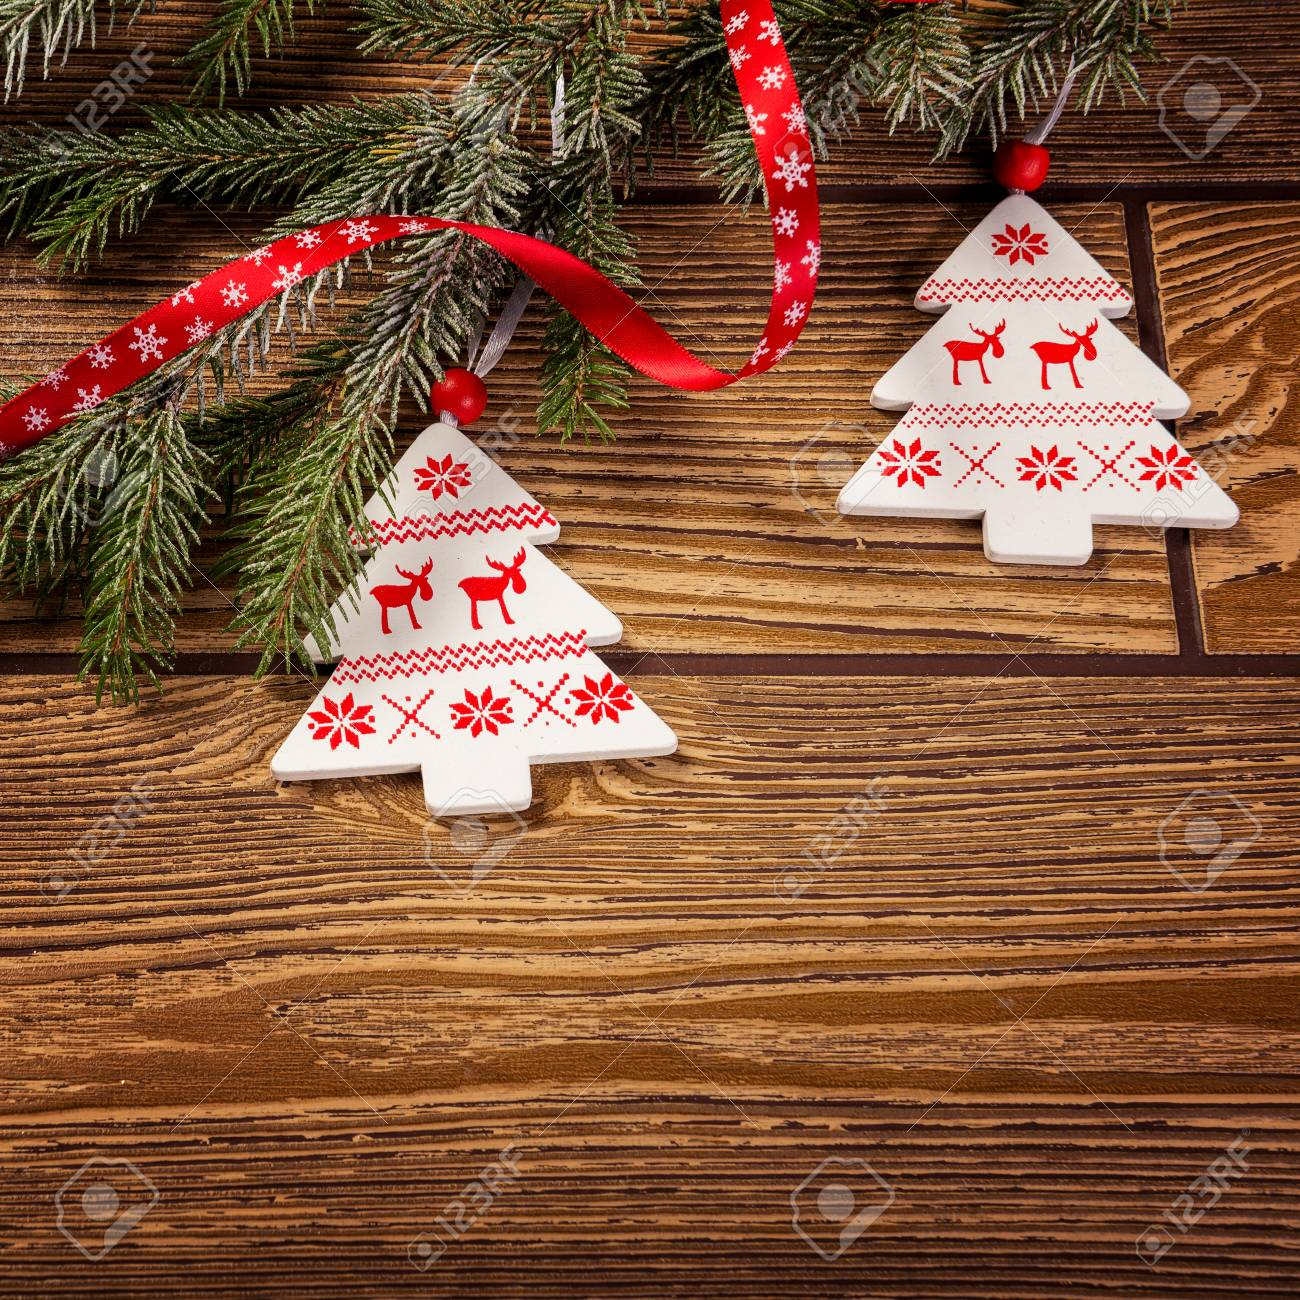 Norwegian Christmas.Christmas Decoration On Wood Background Norwegian Christmas